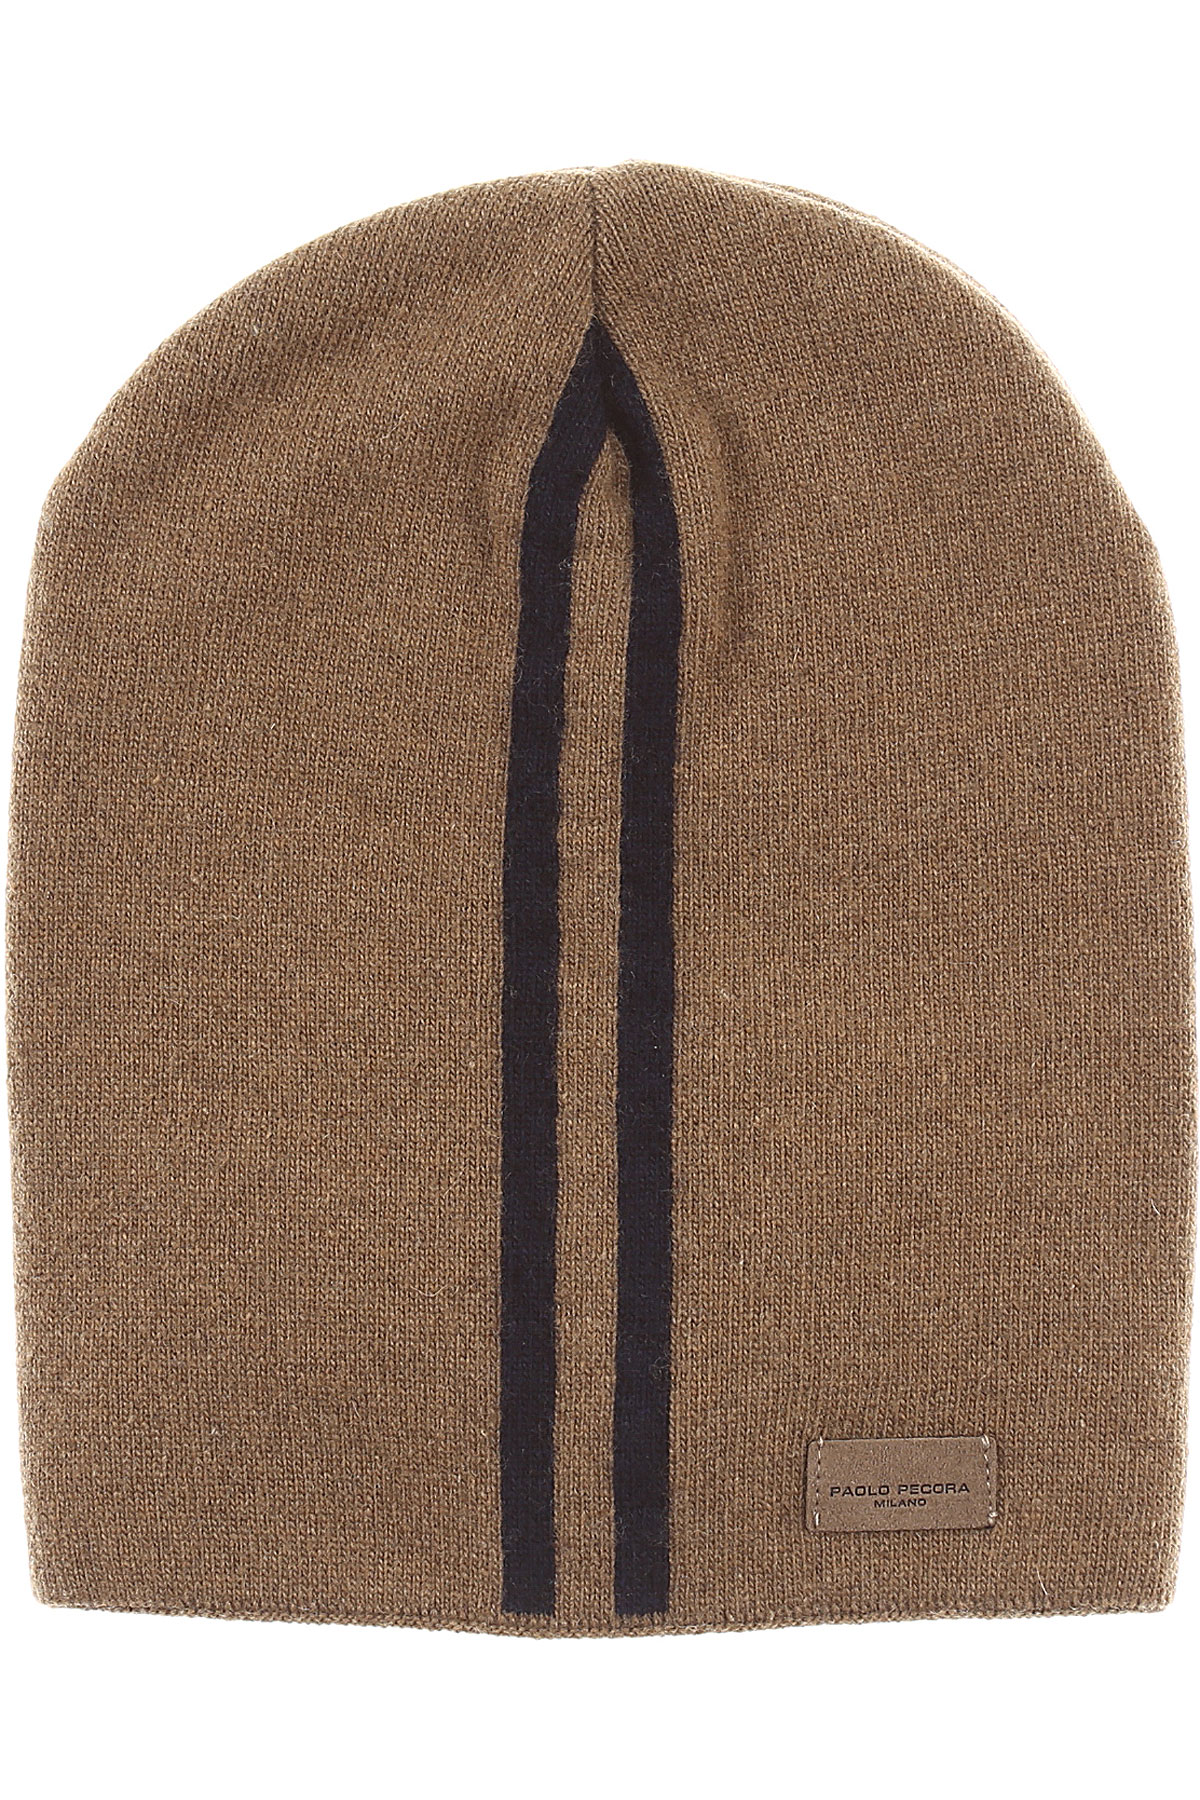 Image of Paolo Pecora Kids Hats for Boys, Beige, Wool, 2017, 4Y 8Y